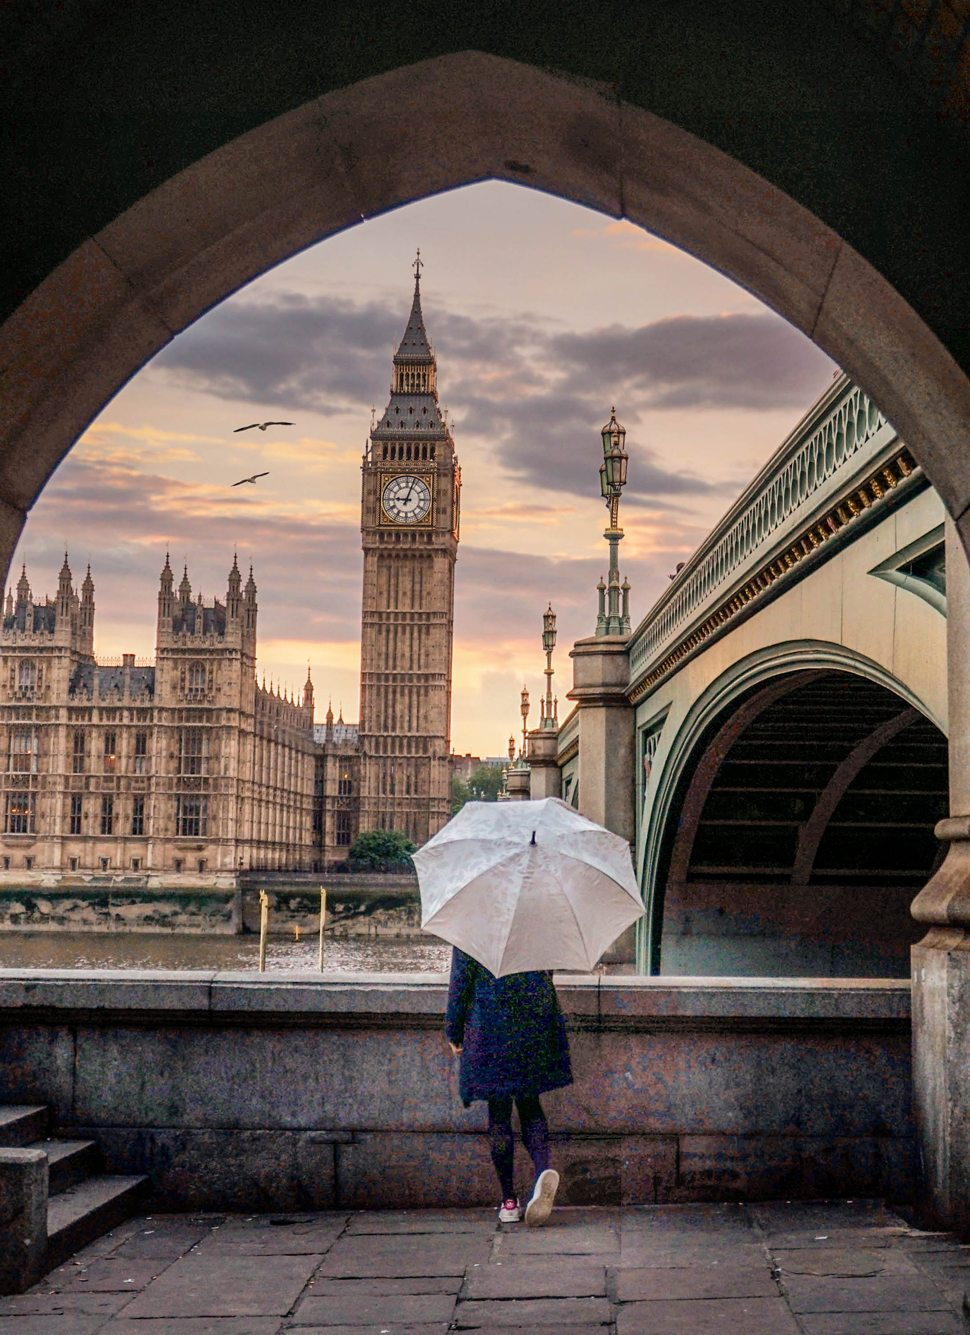 London's Big Ben and the Palace of Westminster